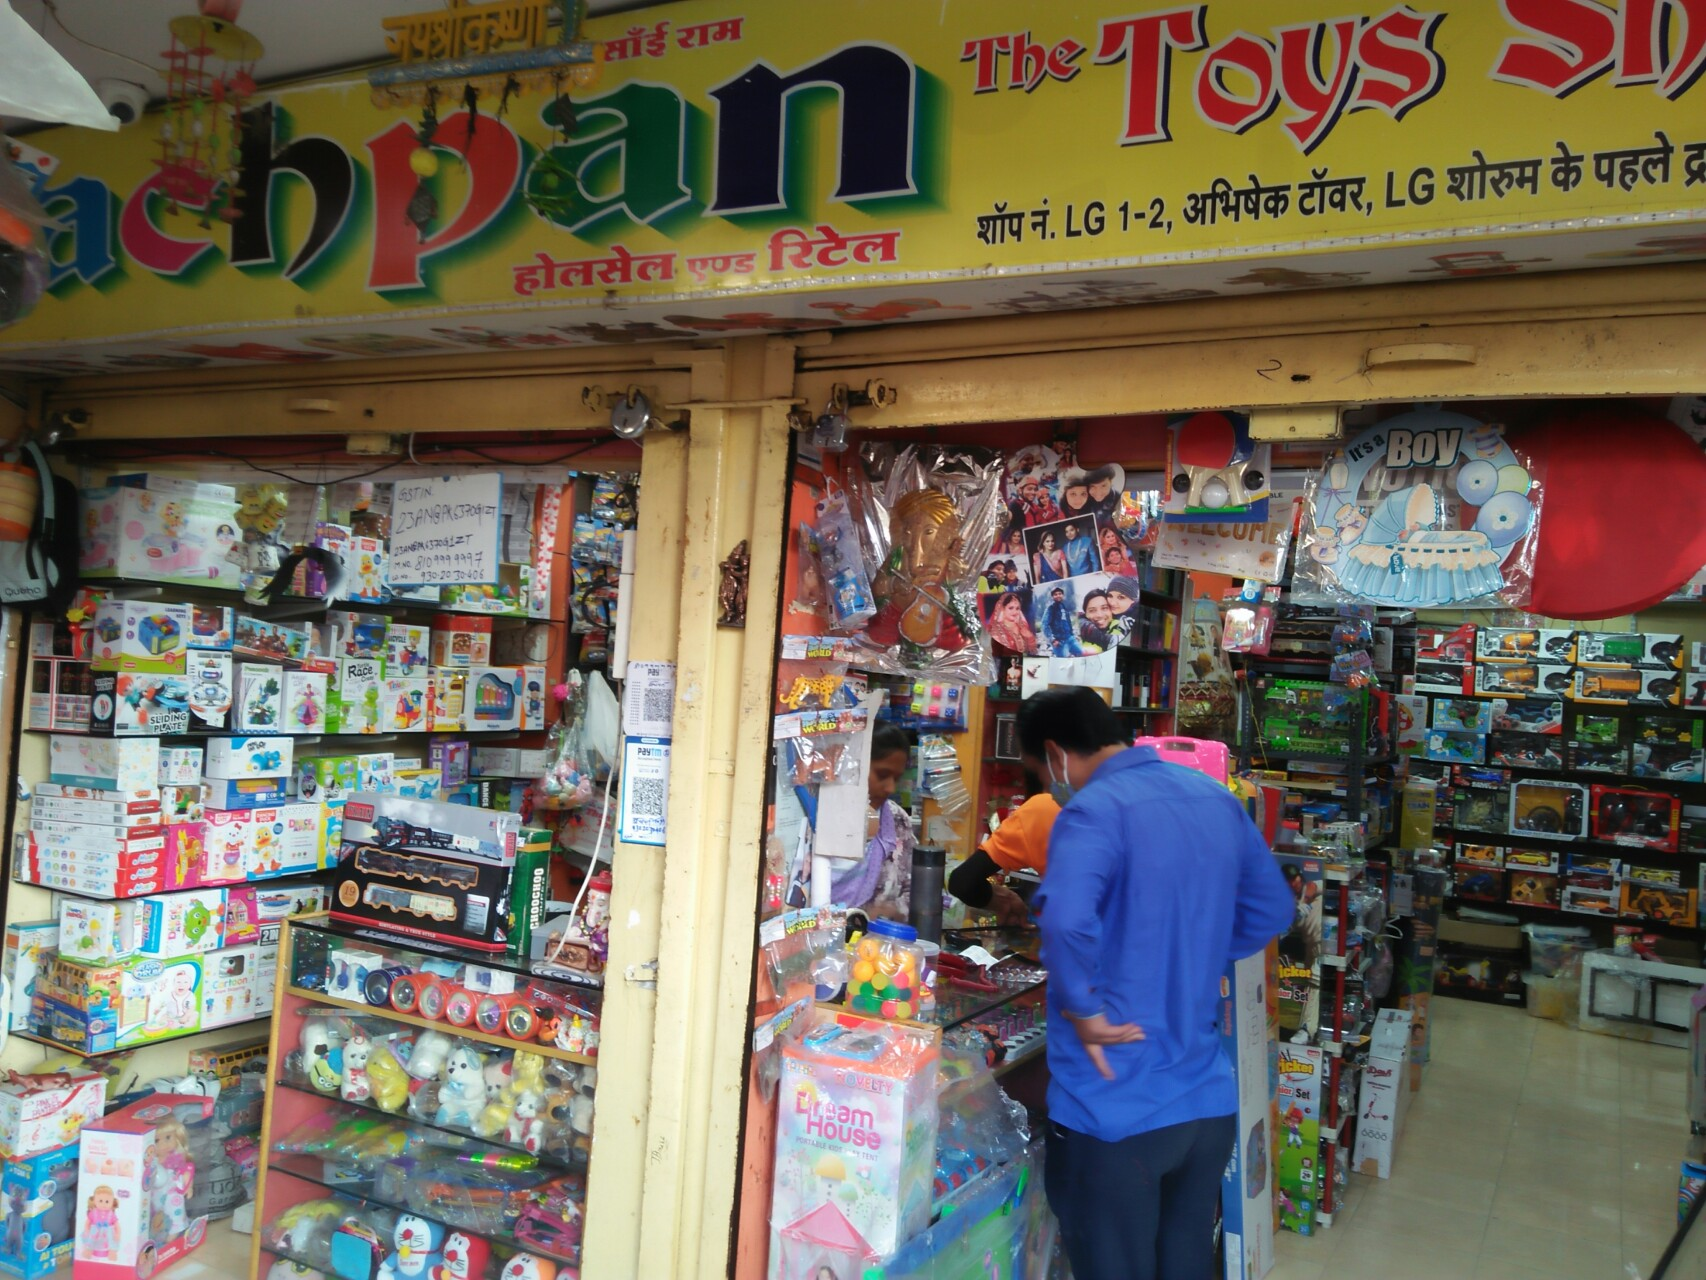 Bachpan toys and gifts gellary